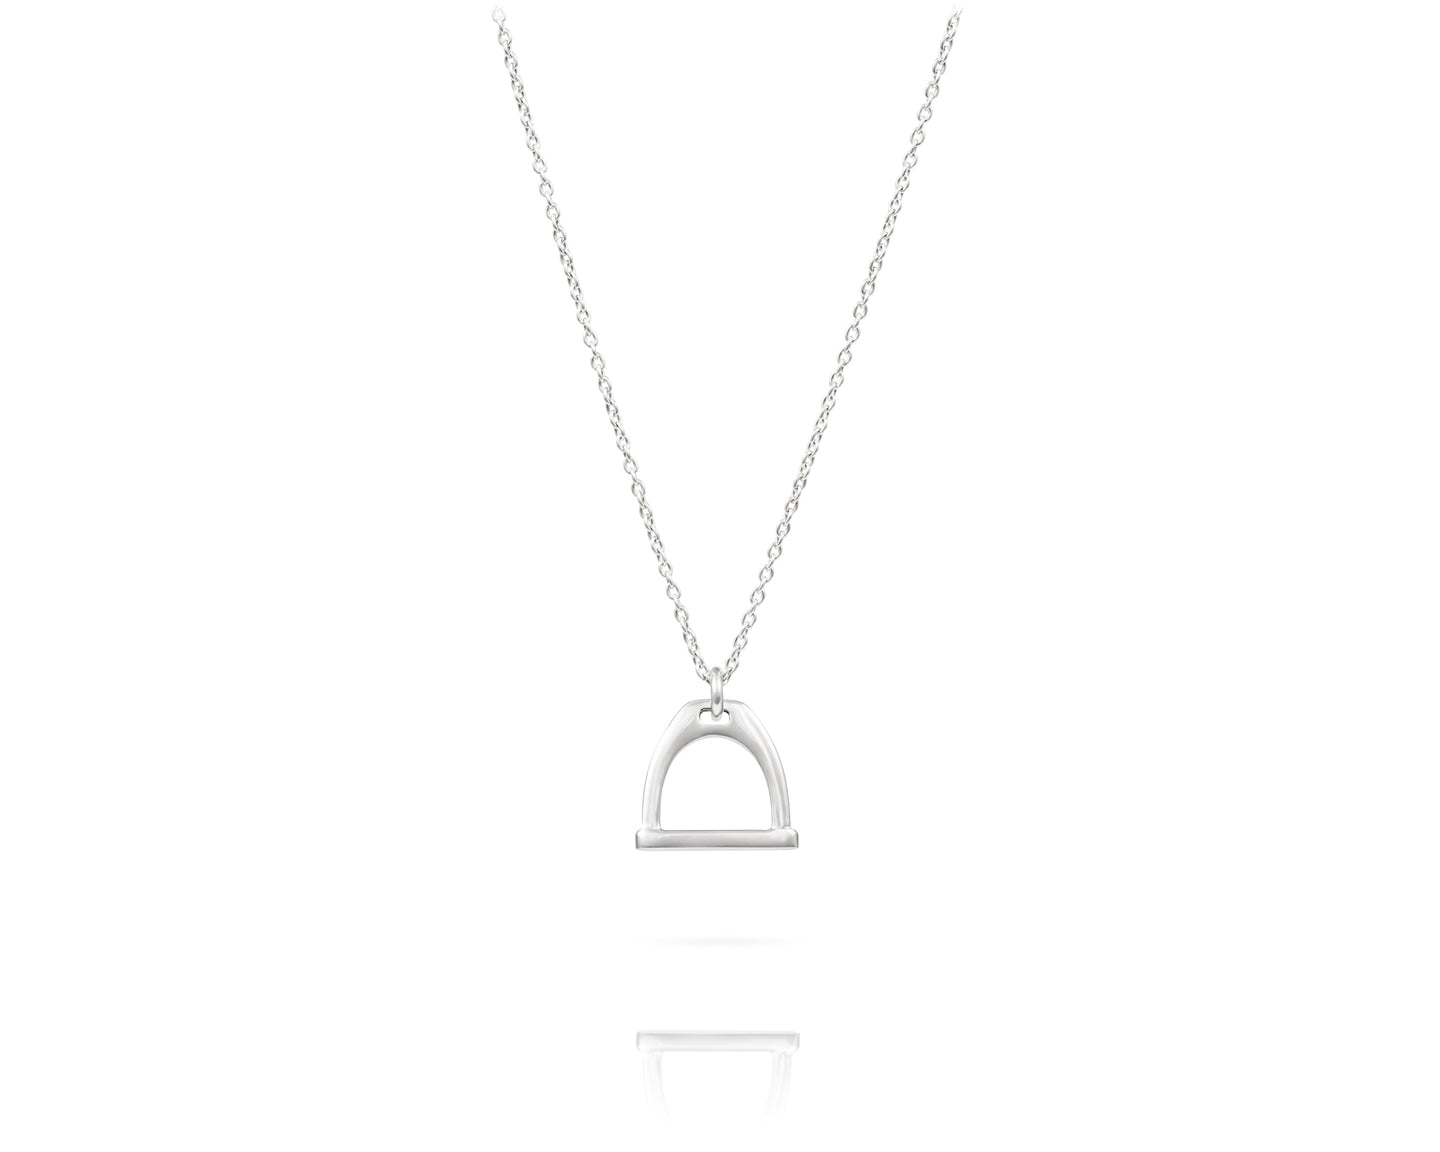 Small Stirrup Charm Necklace